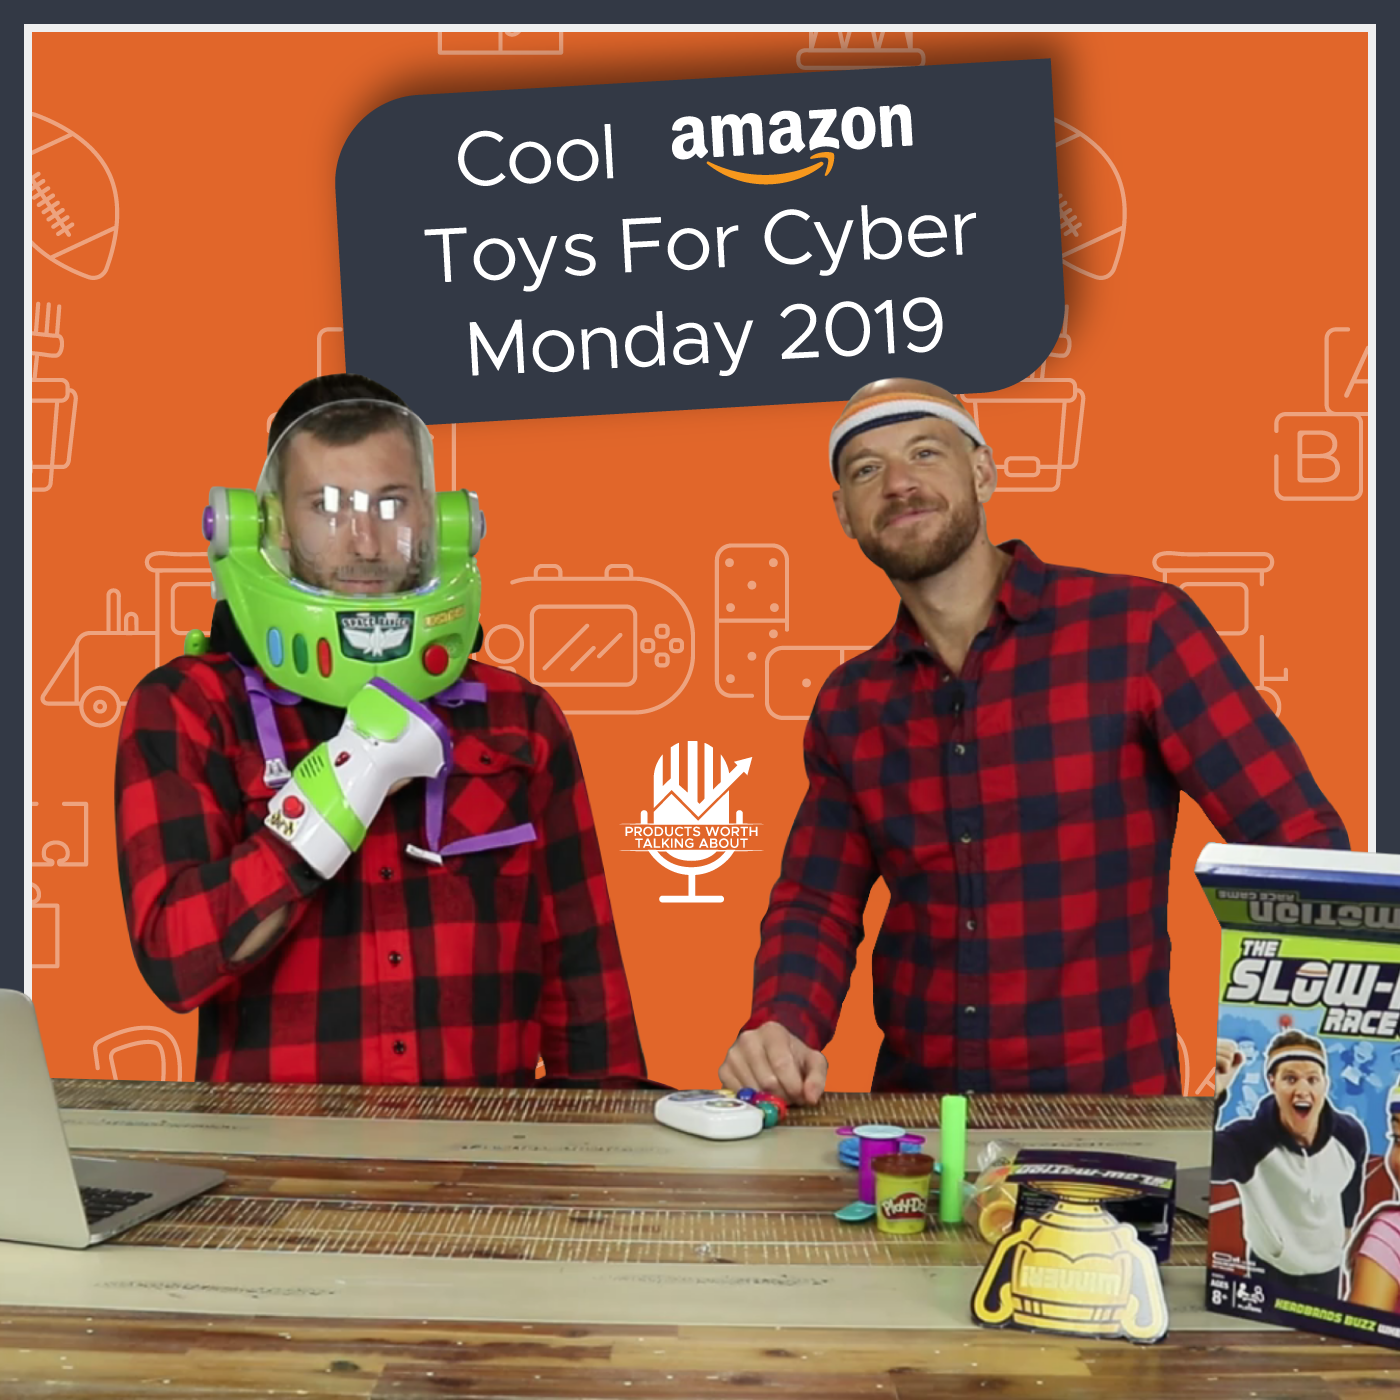 Cool Amazon Toys For Cyber Monday 2019